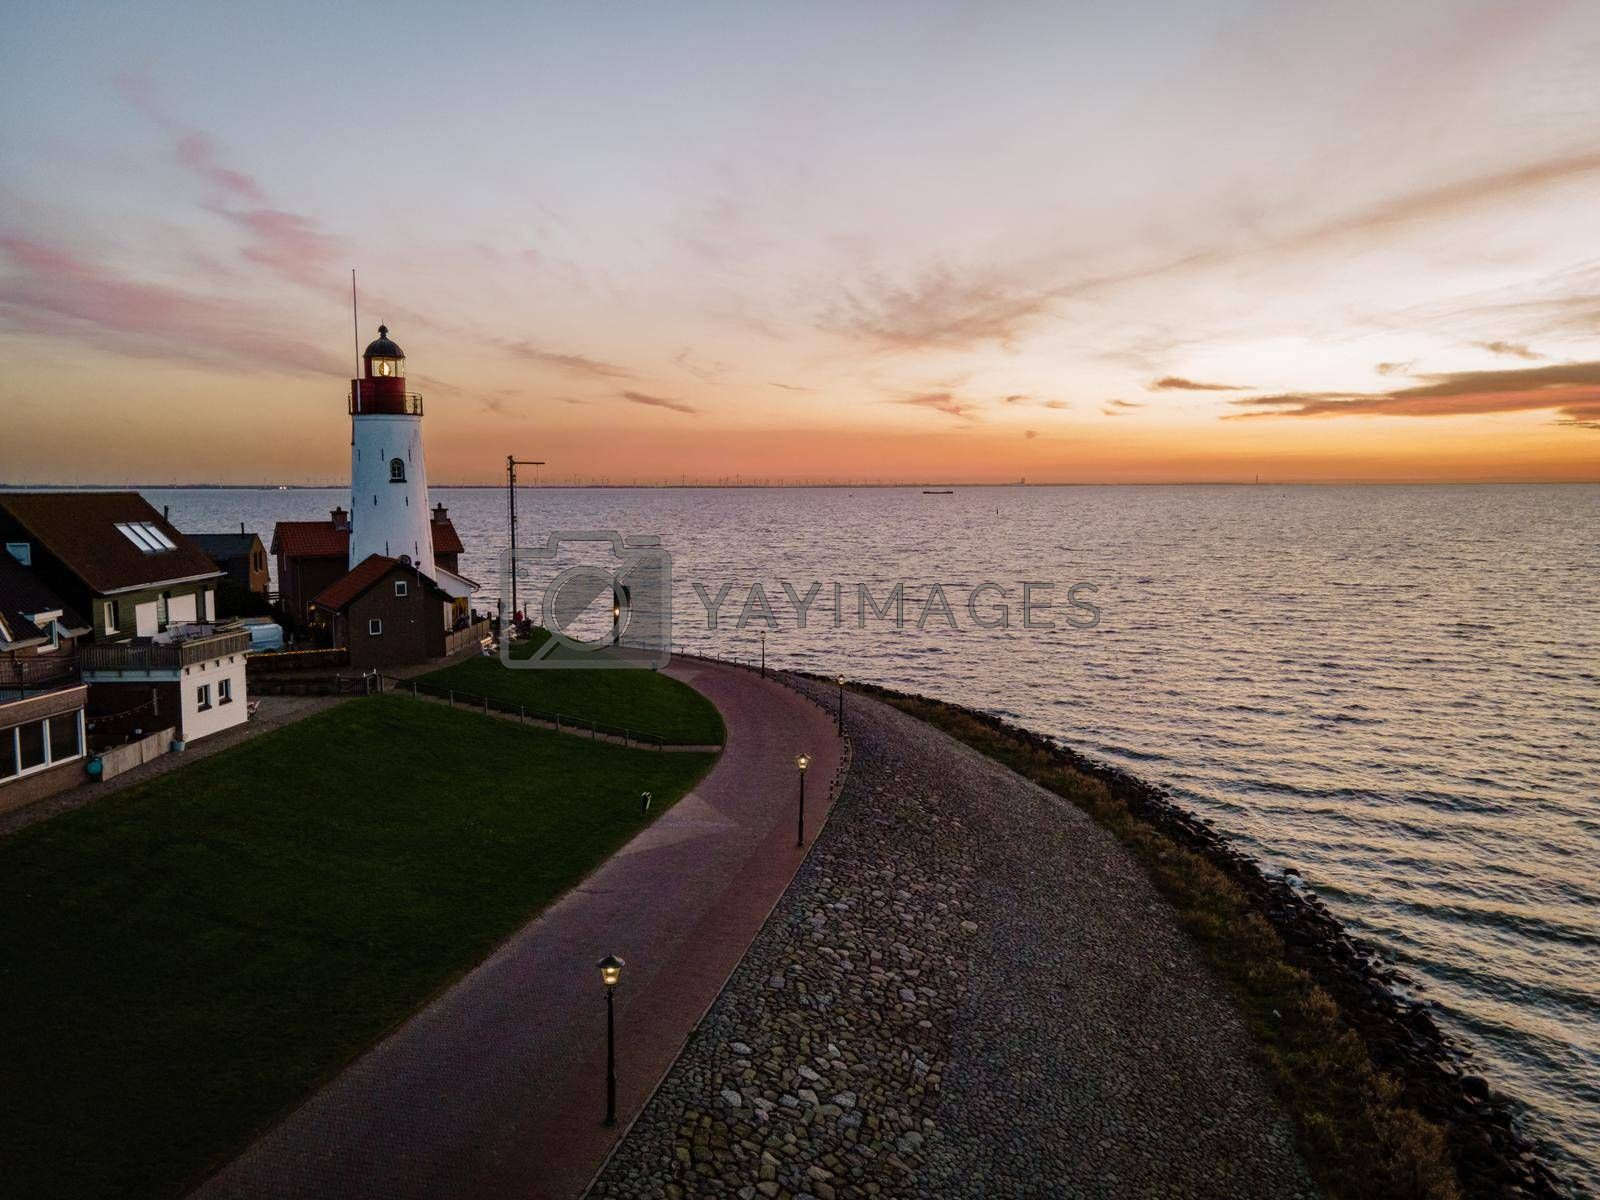 Urk lighthouse with old harbor during sunset, Urk is a small village by the lake Ijsselmeer in the Netherlands Flevoland area. beach and harbor of Urk